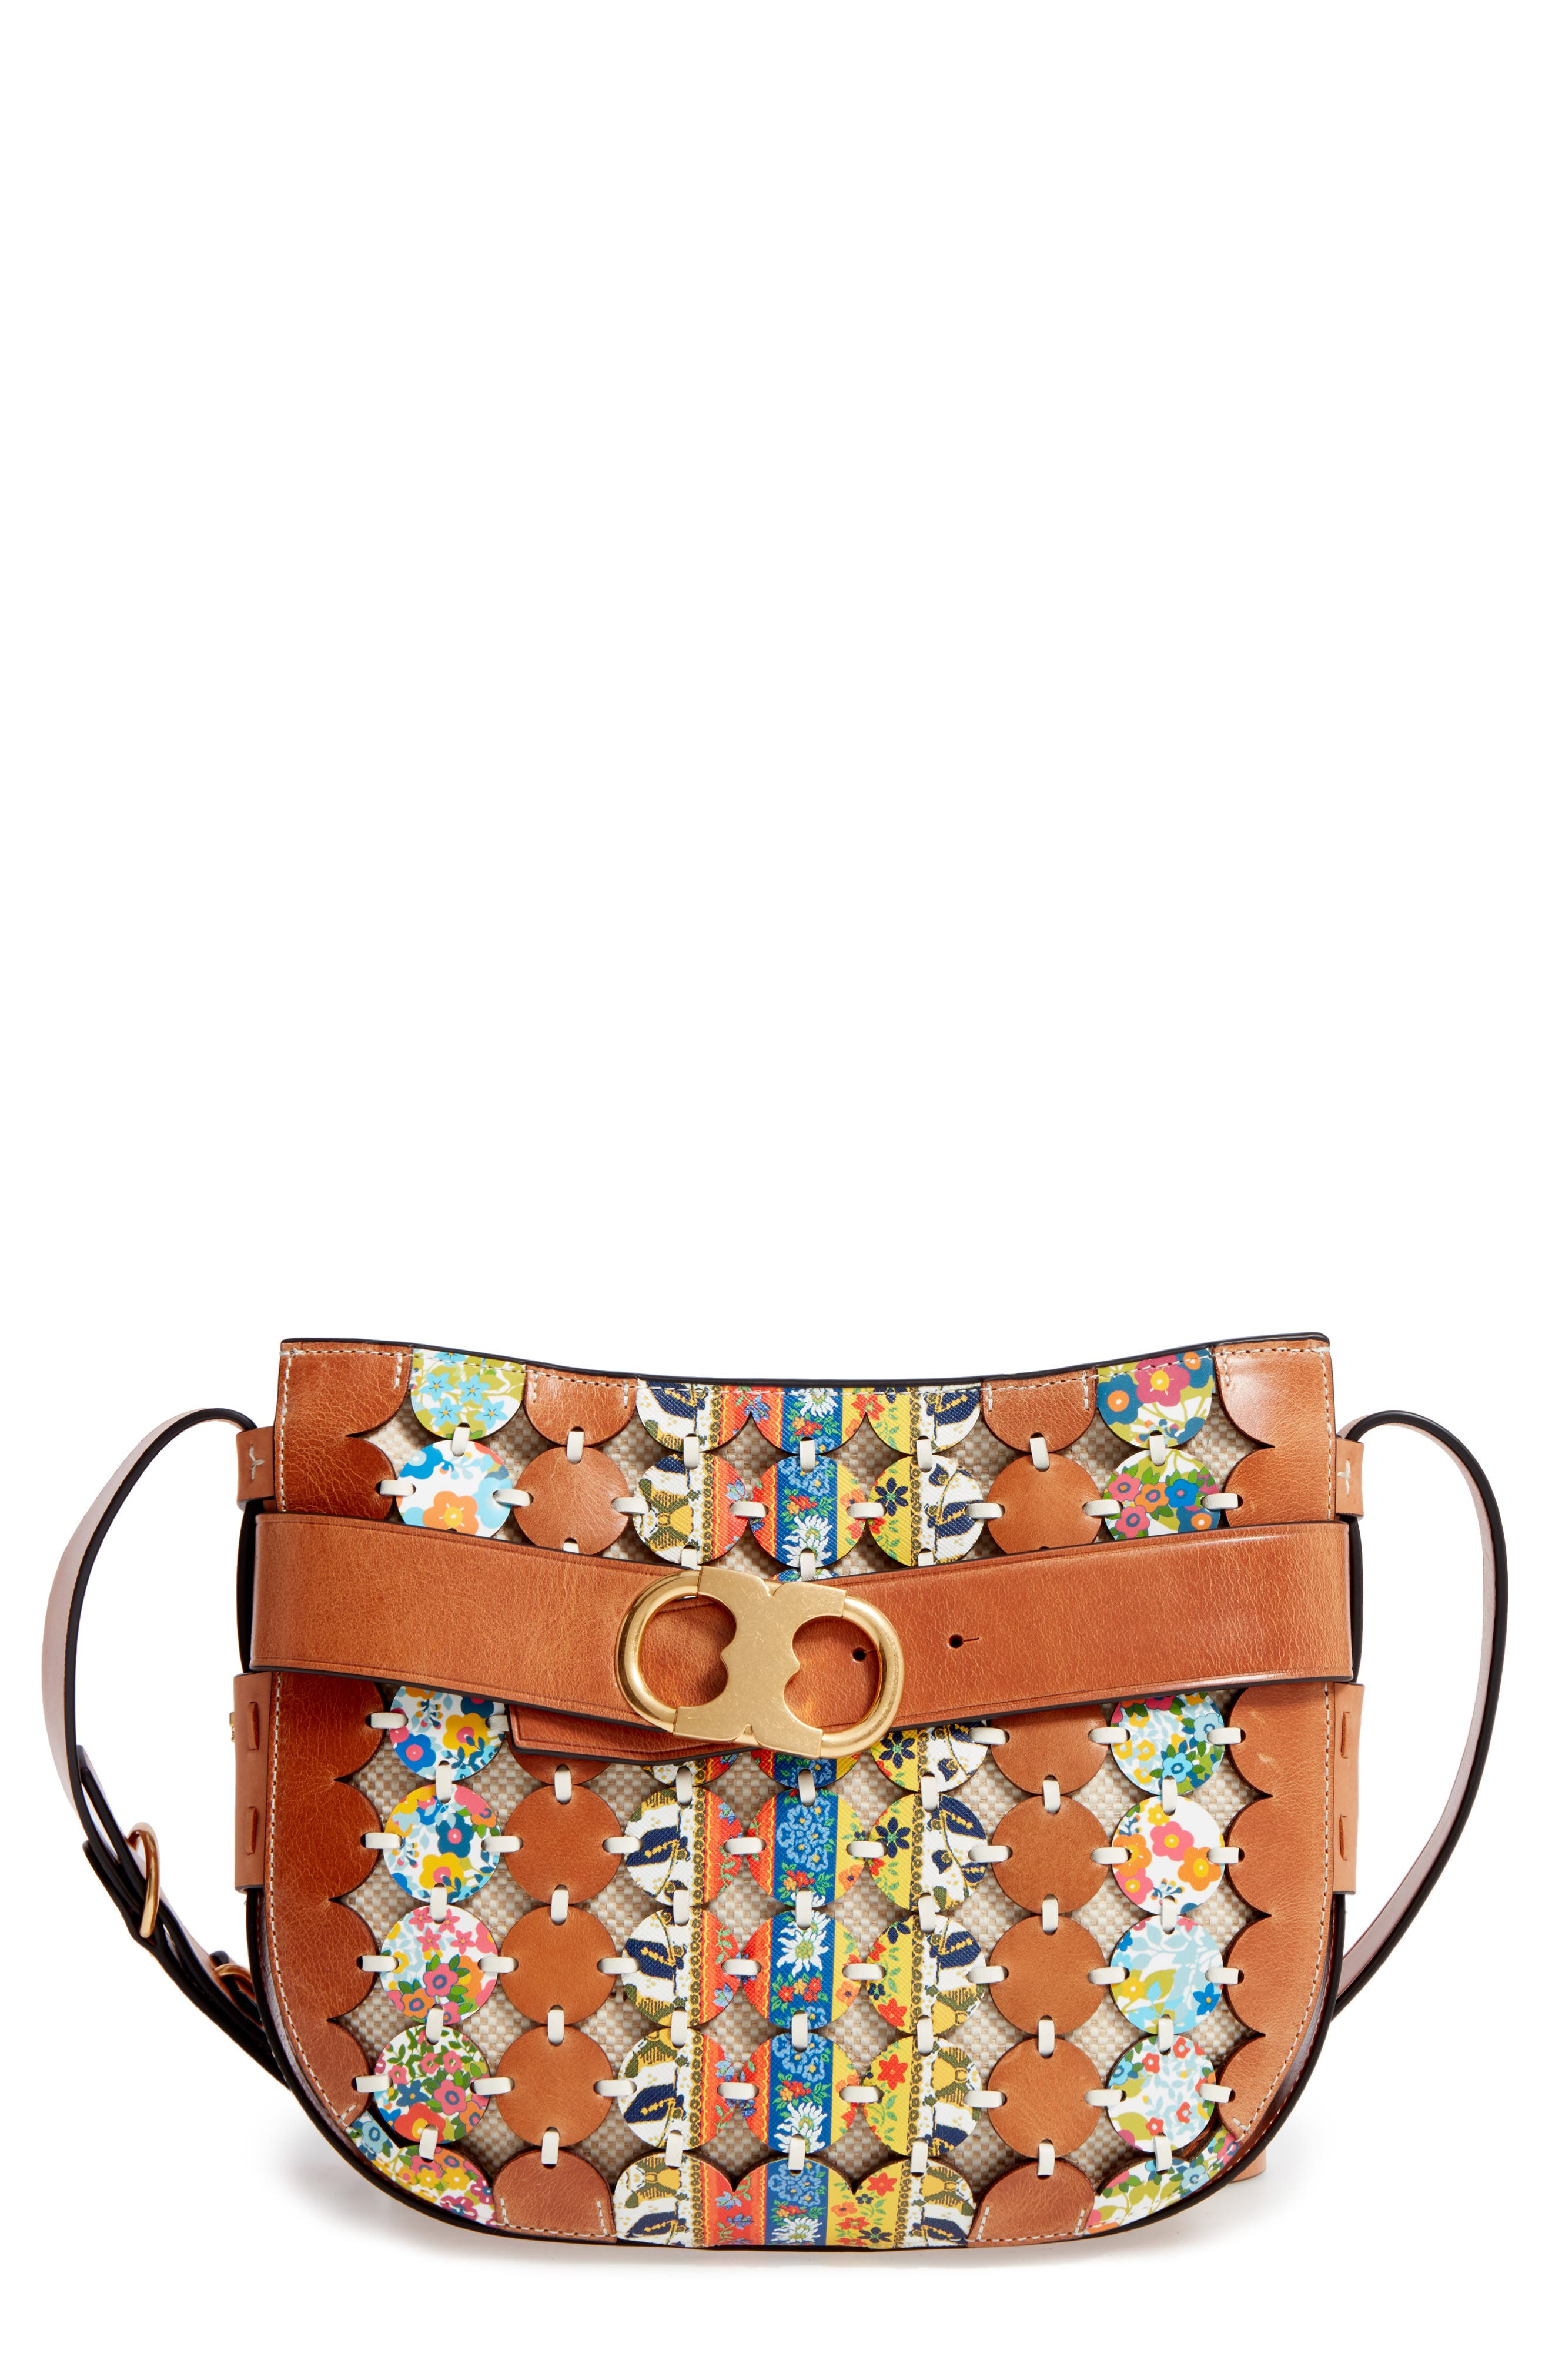 Main Image - Tory Burch Gemini Link Belted Leather Crossbody Bag